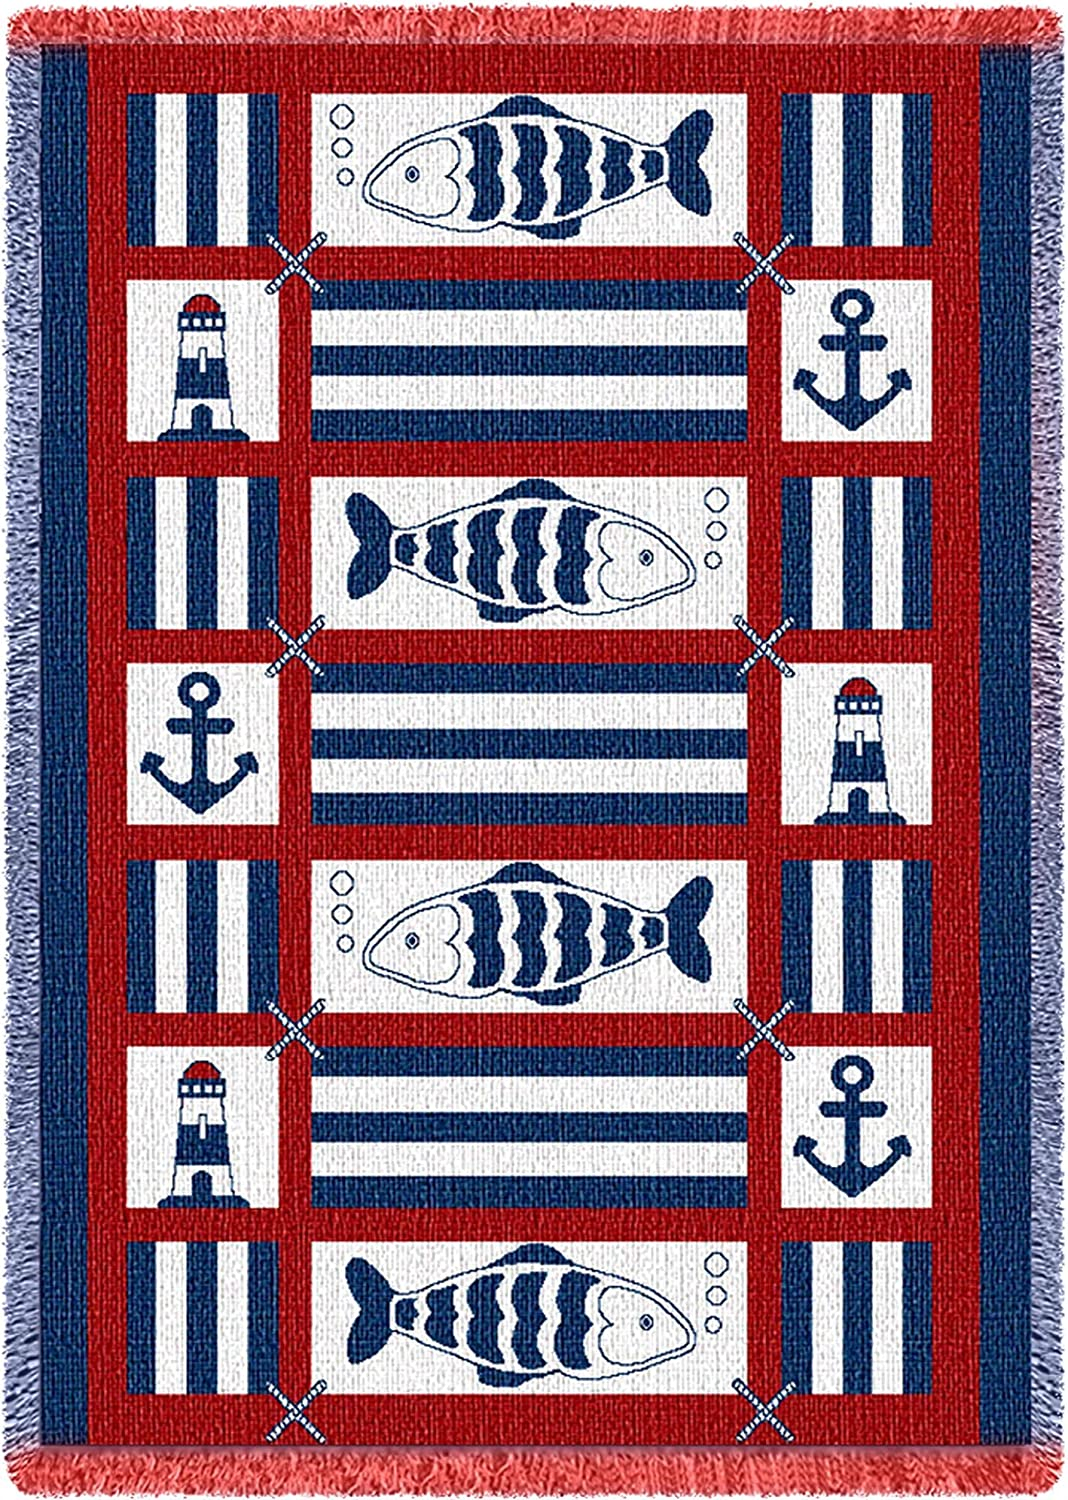 Pure Country Weavers Nautical Fish Throw Blanket Woven from Cotton - Made in The USA (69x48)